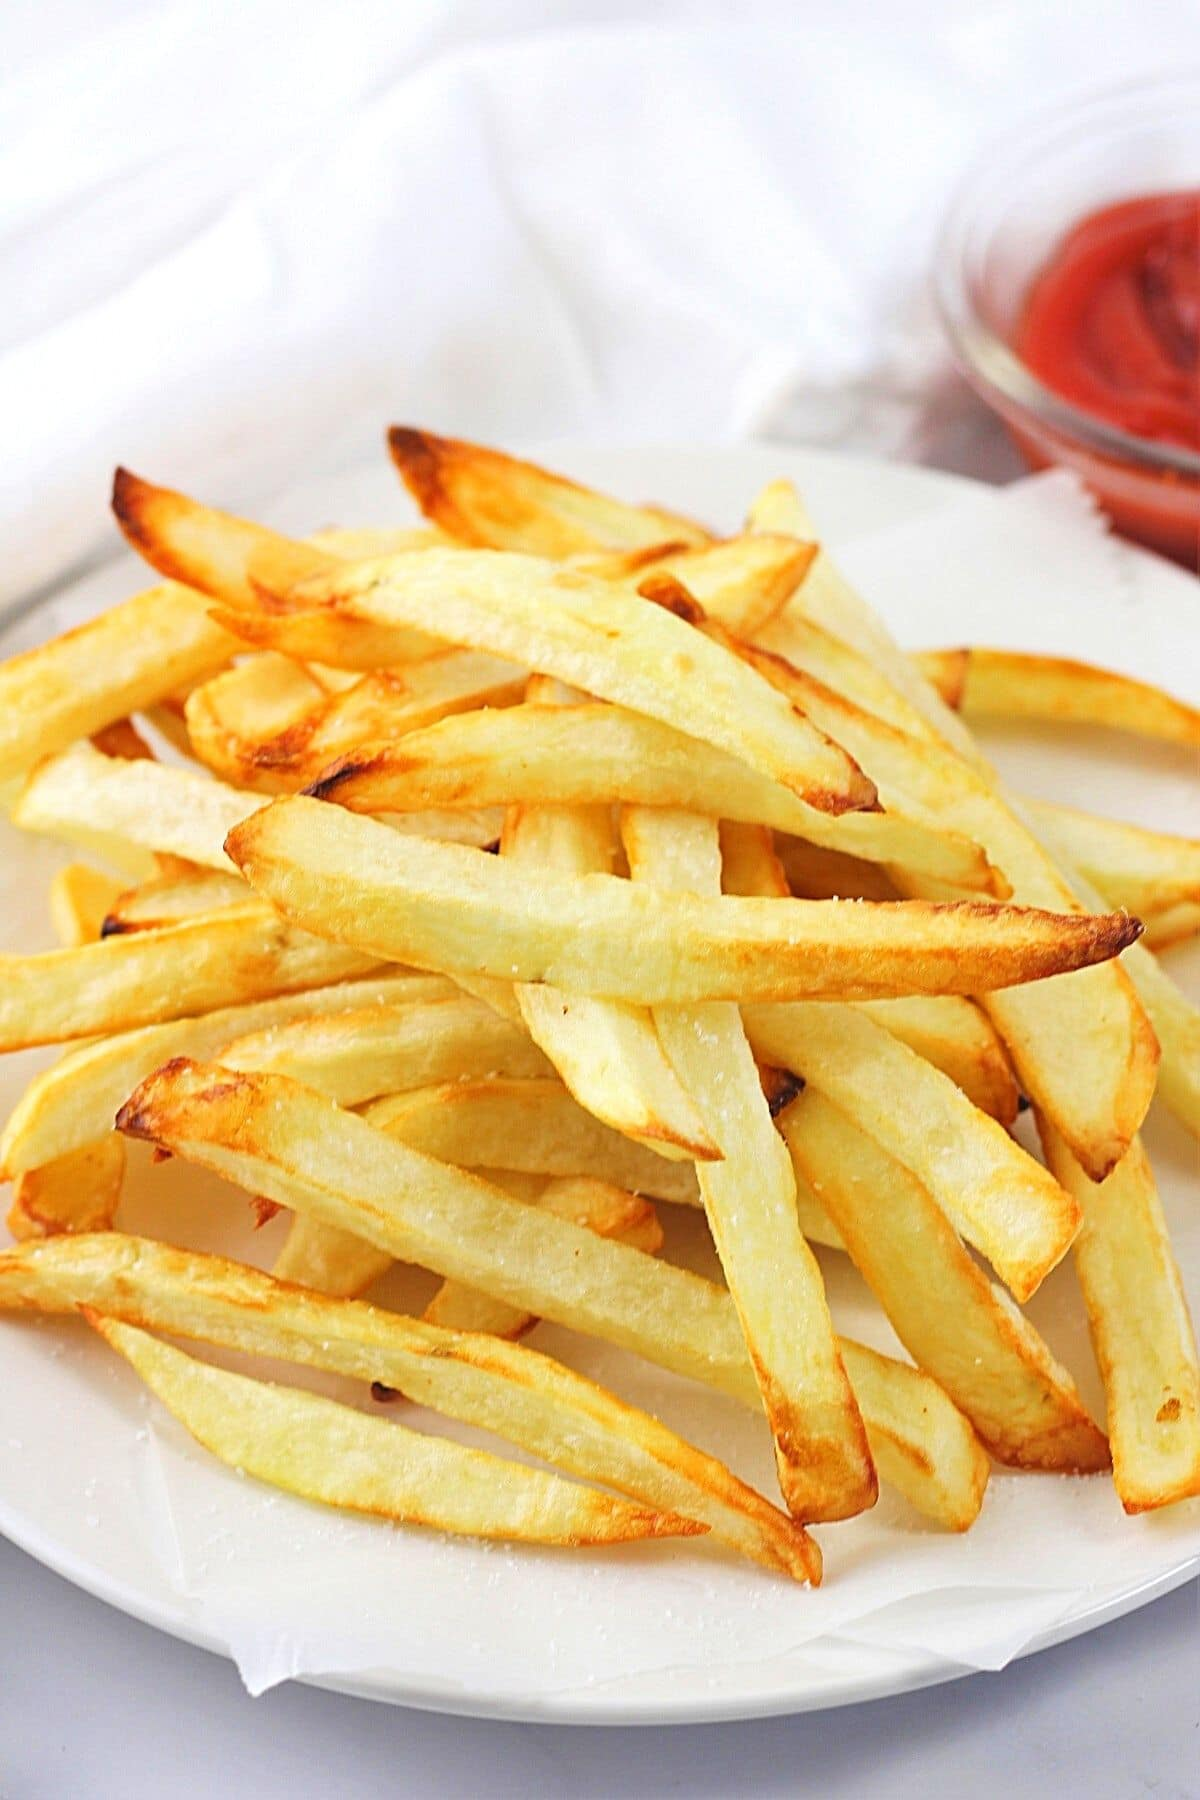 air fryer homemade French fries on a white plate with a small bowl of ketchup on the side